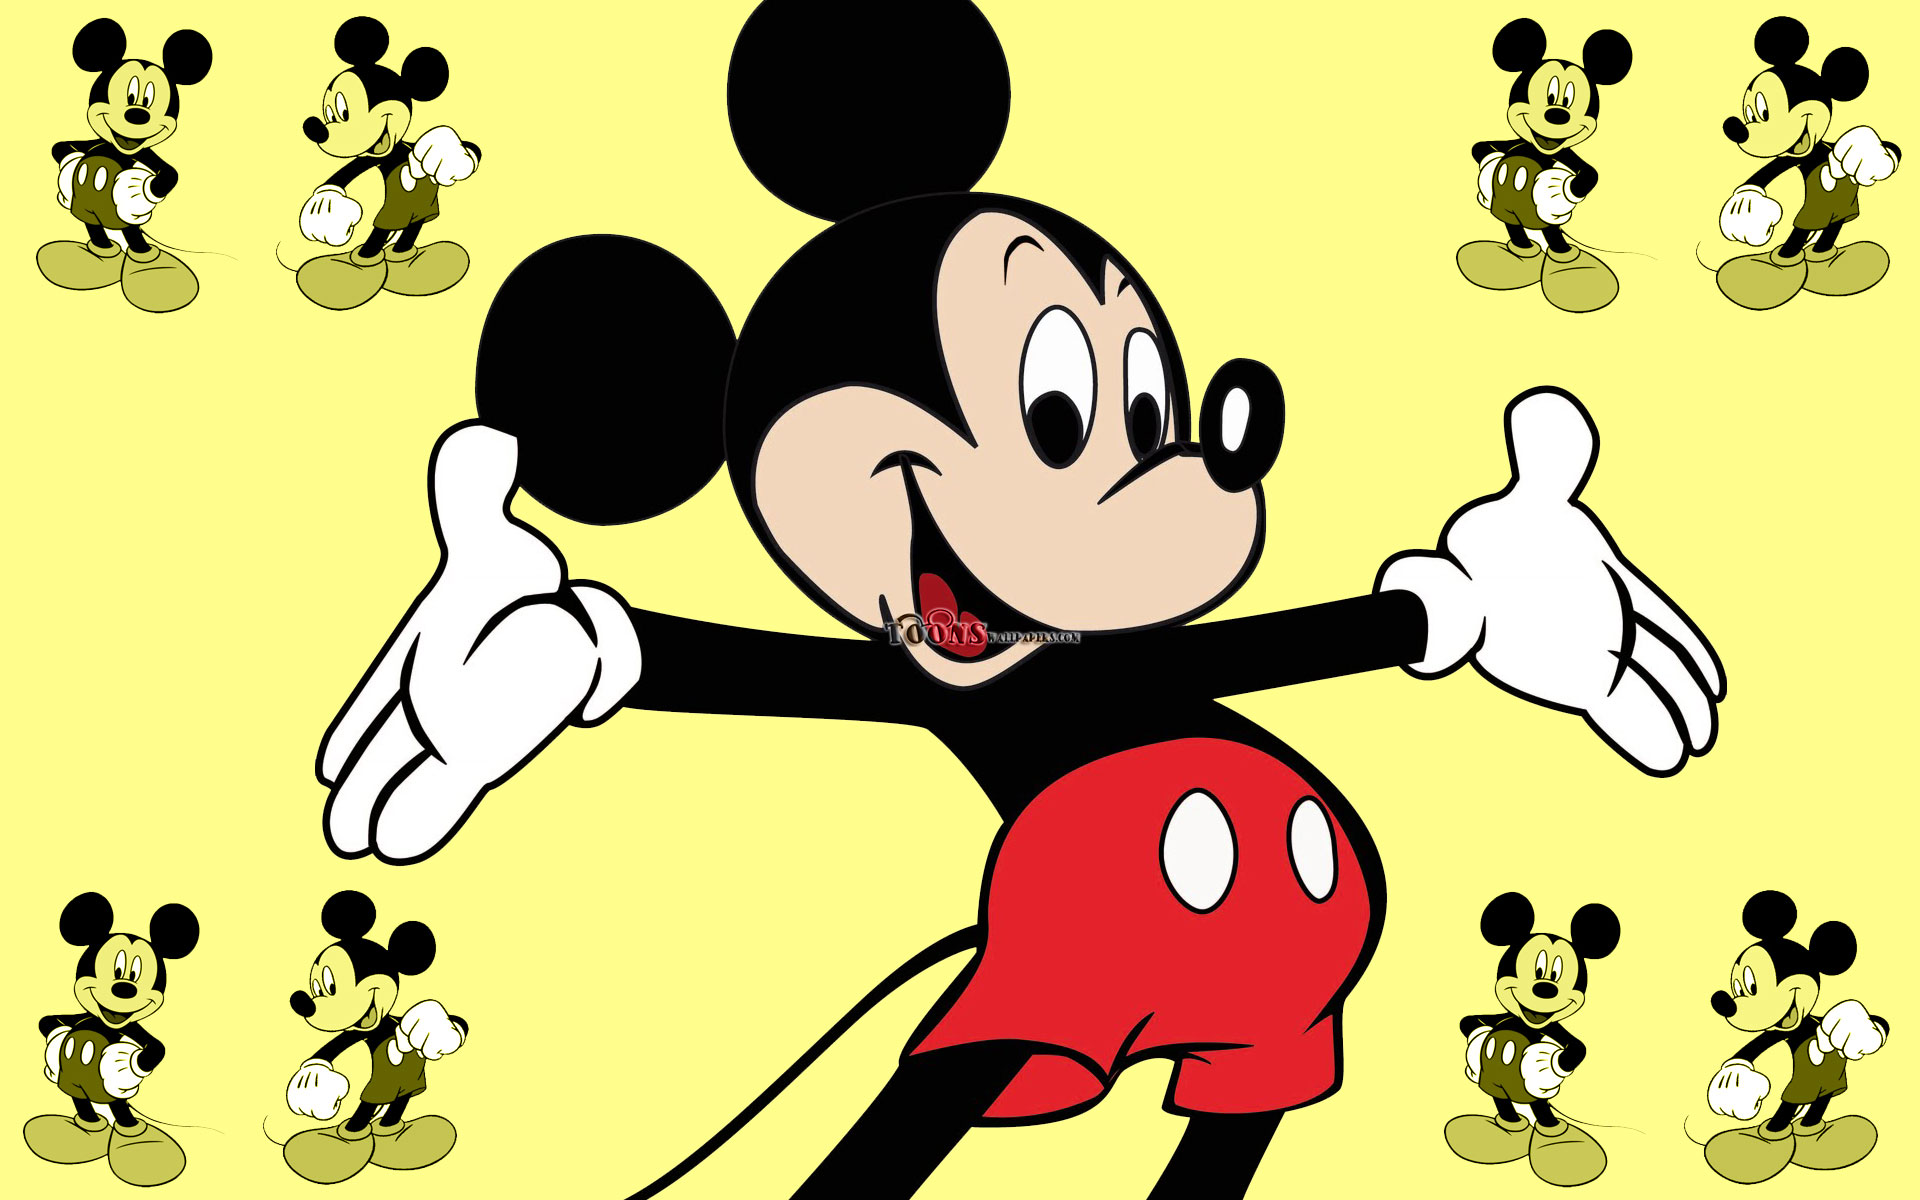 wallpaper mouse mickey wallpapers cartoons toonswallpapers 1920x1200